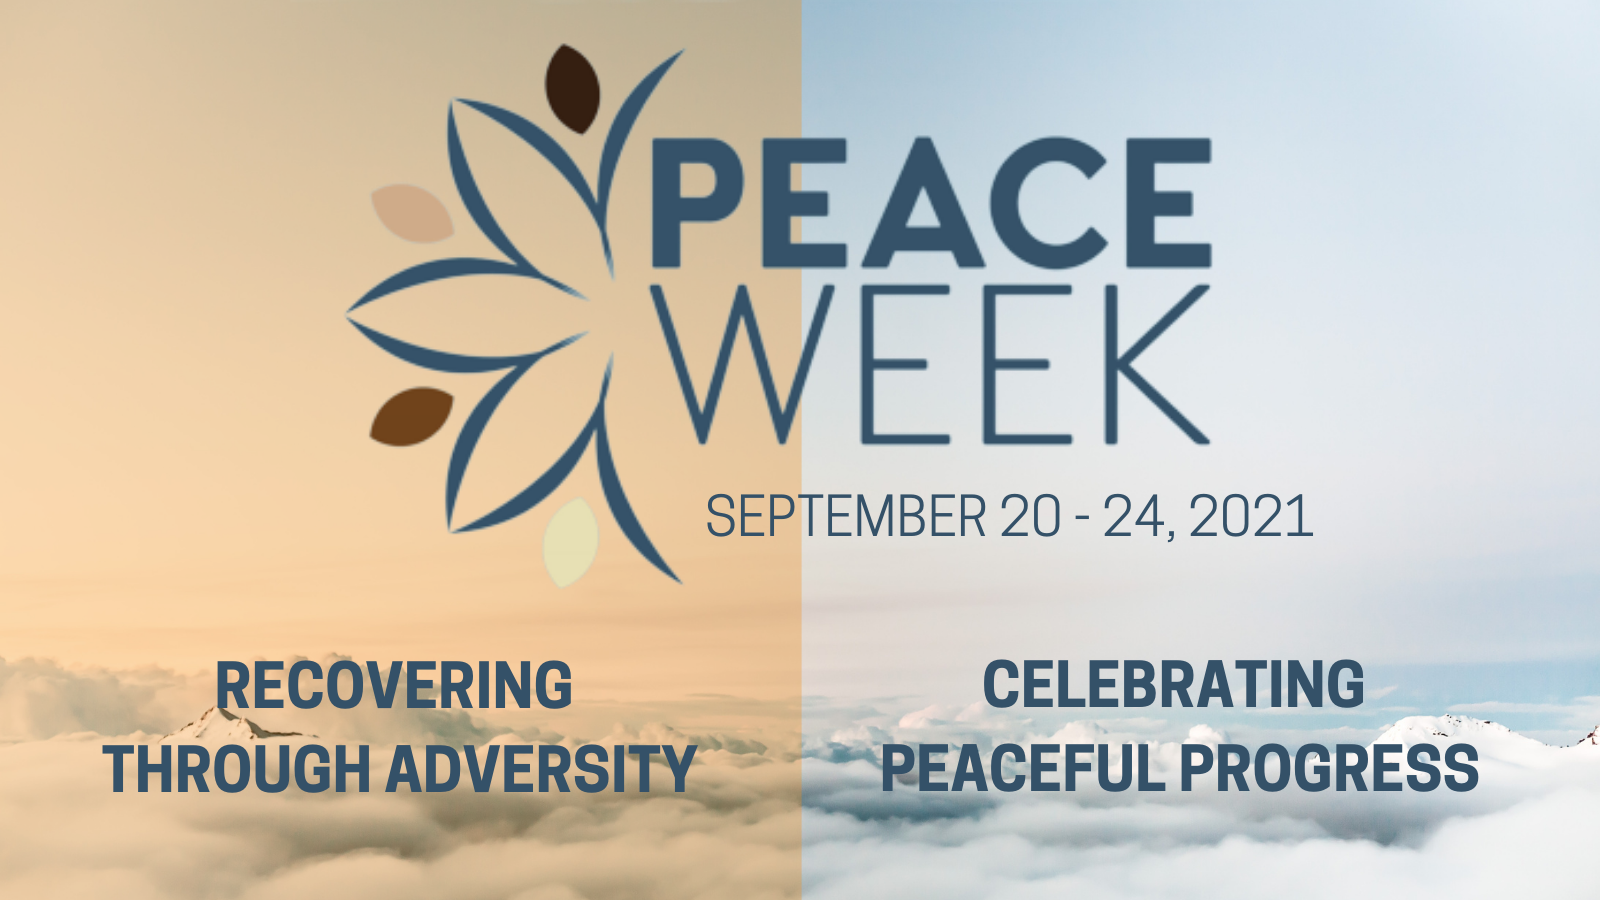 Peace Week 2021: Recovering through adversity and celebrating peaceful progress.